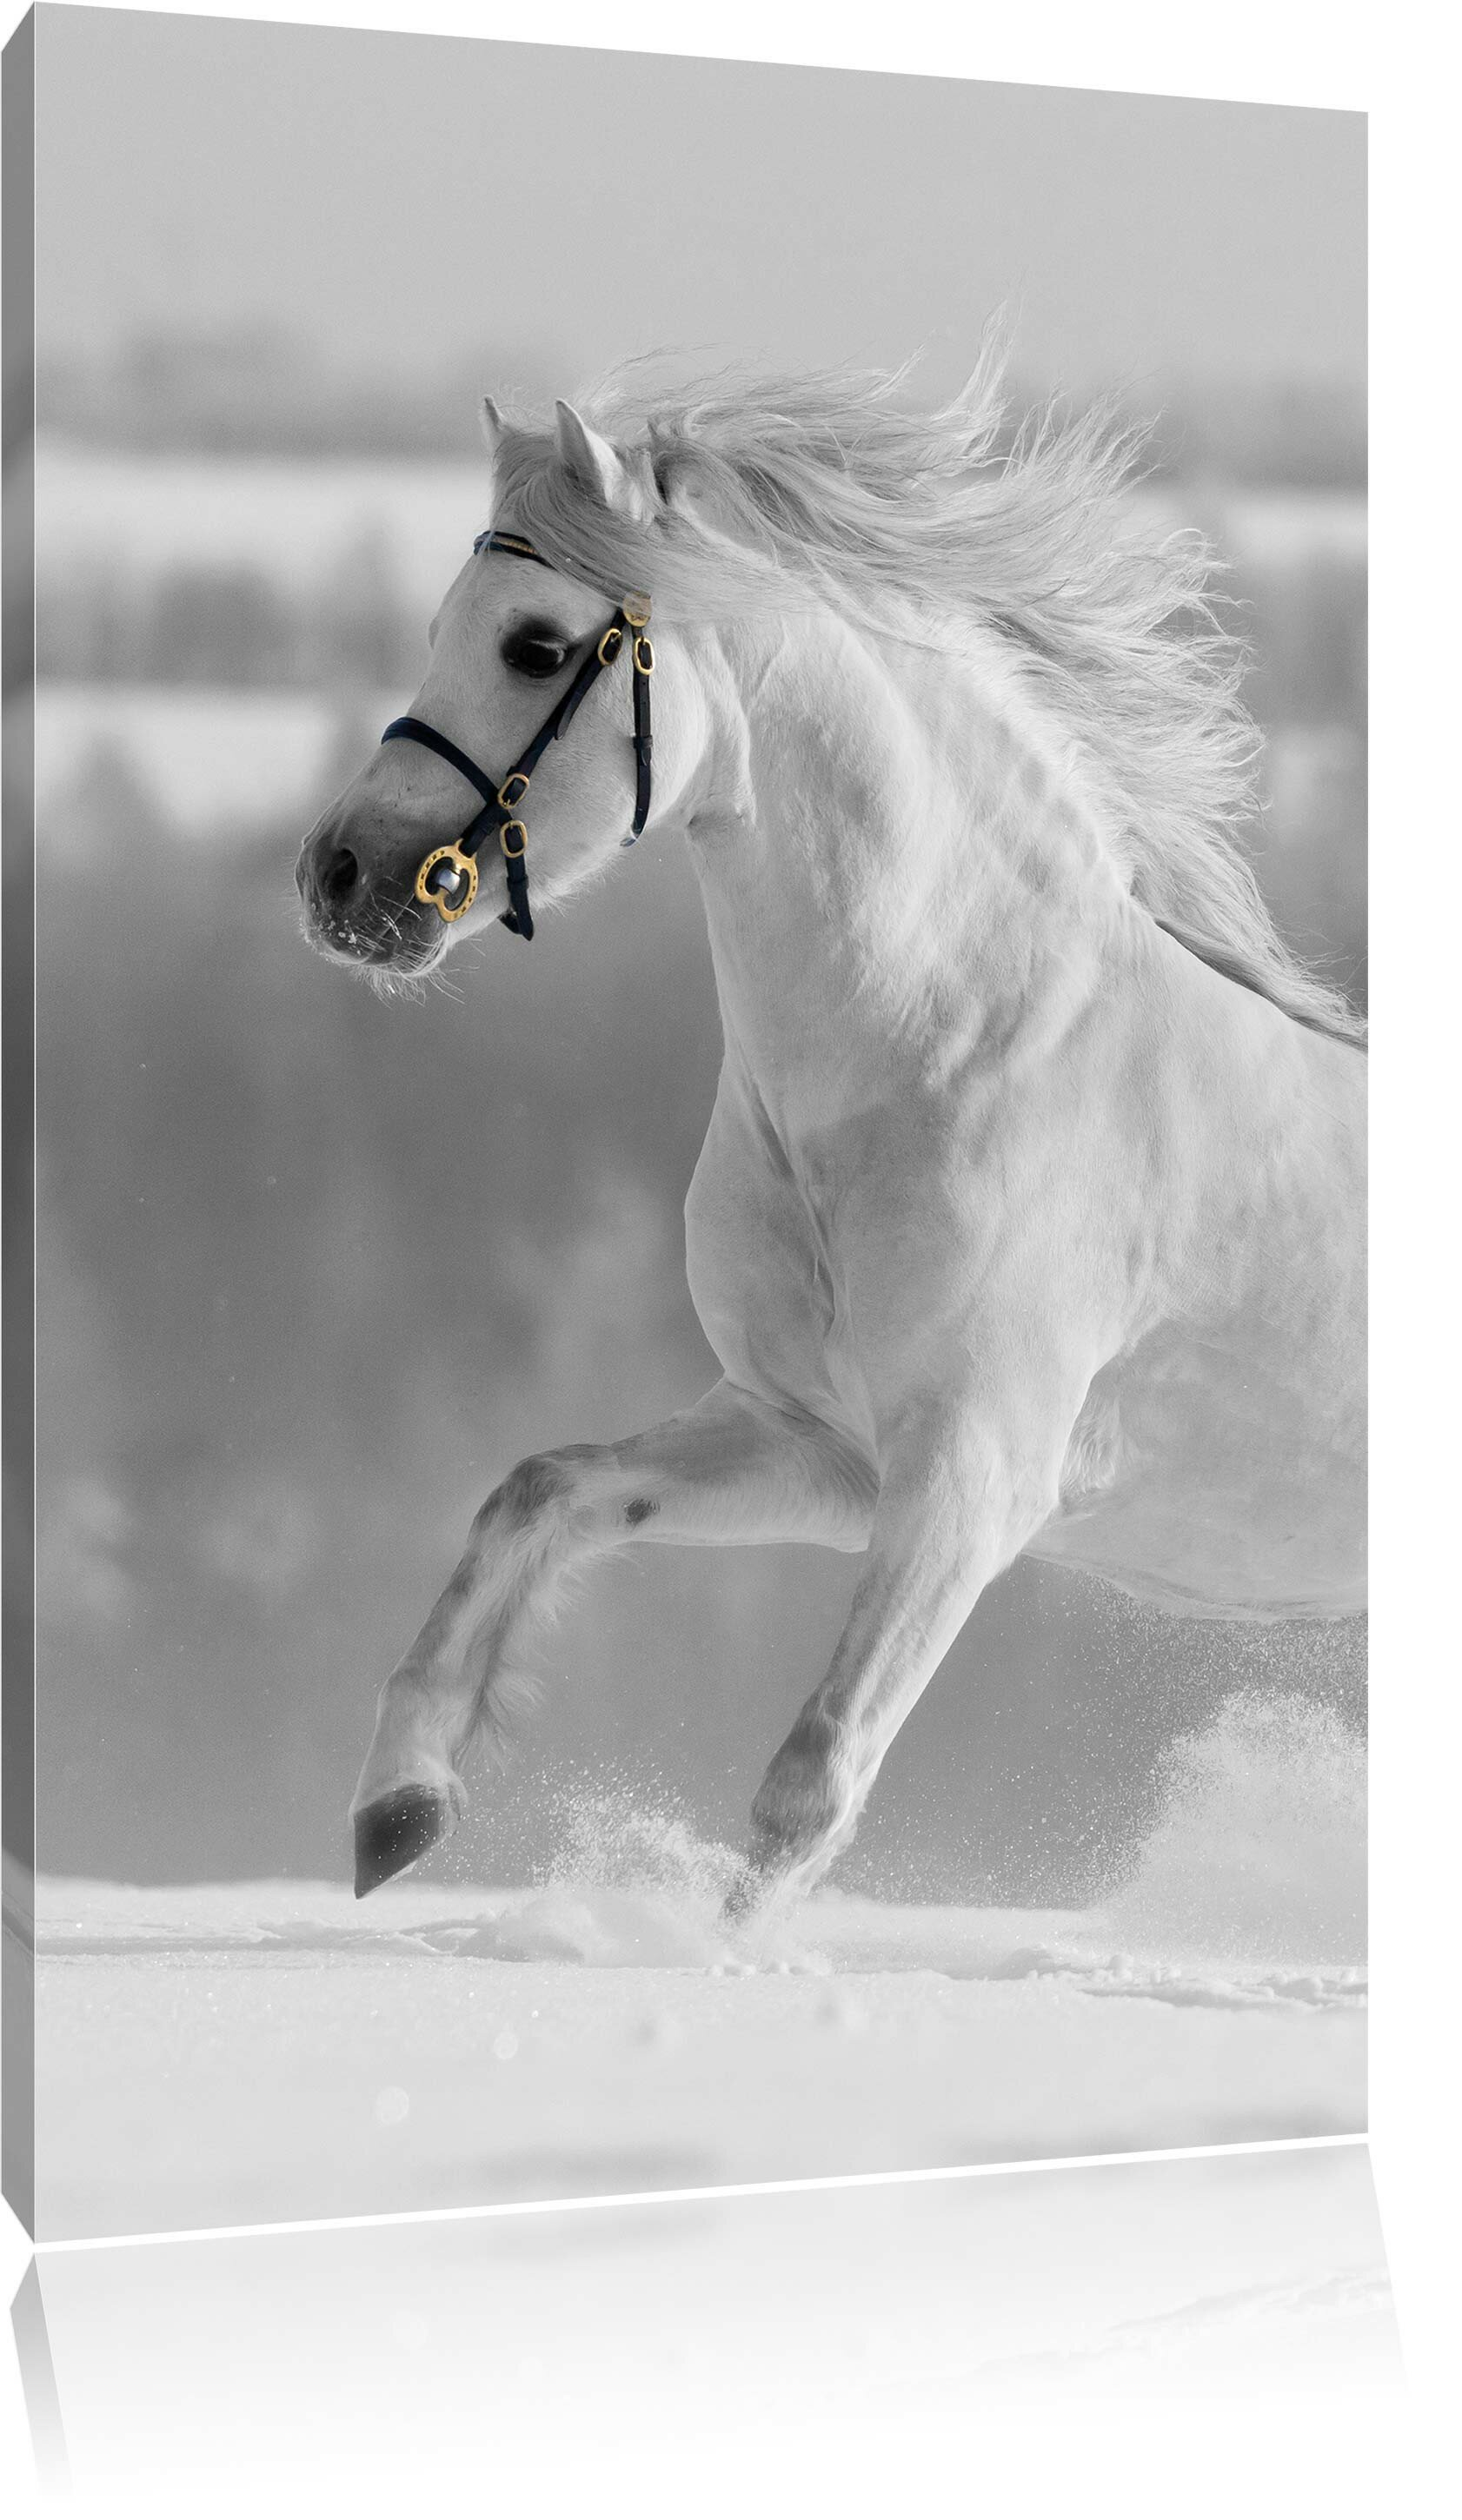 East Urban Home Beautiful White Horse In Snowy Meadow Graphic Art Print On Canvas